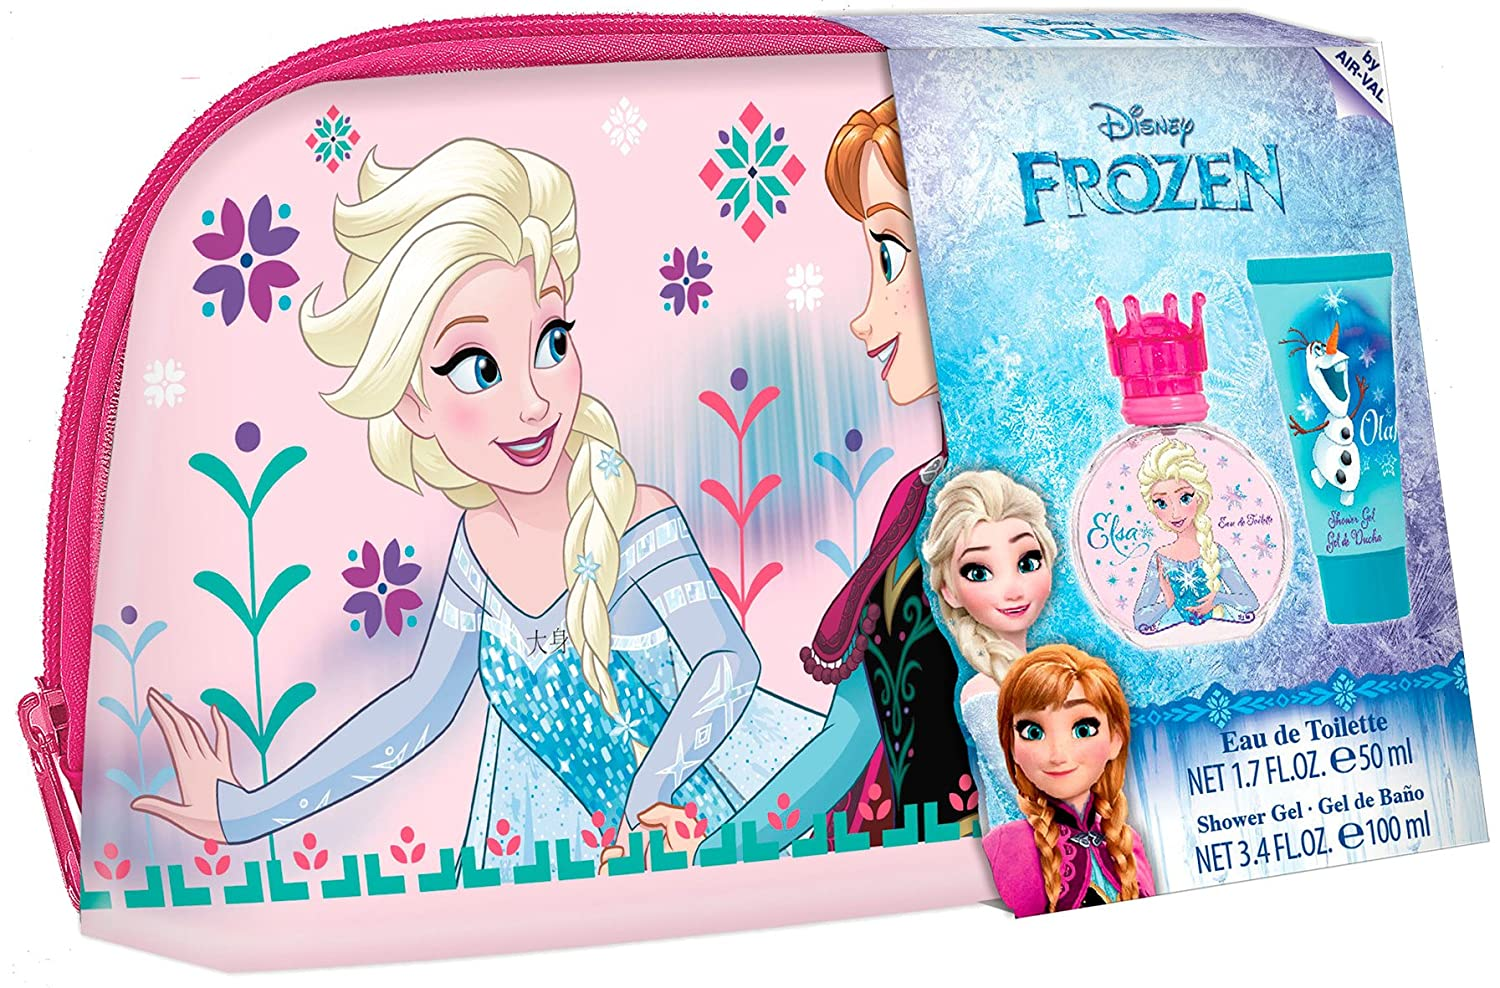 Amazon.com : Disney Frozen for Kids 3 Piece Gift Set : Beauty